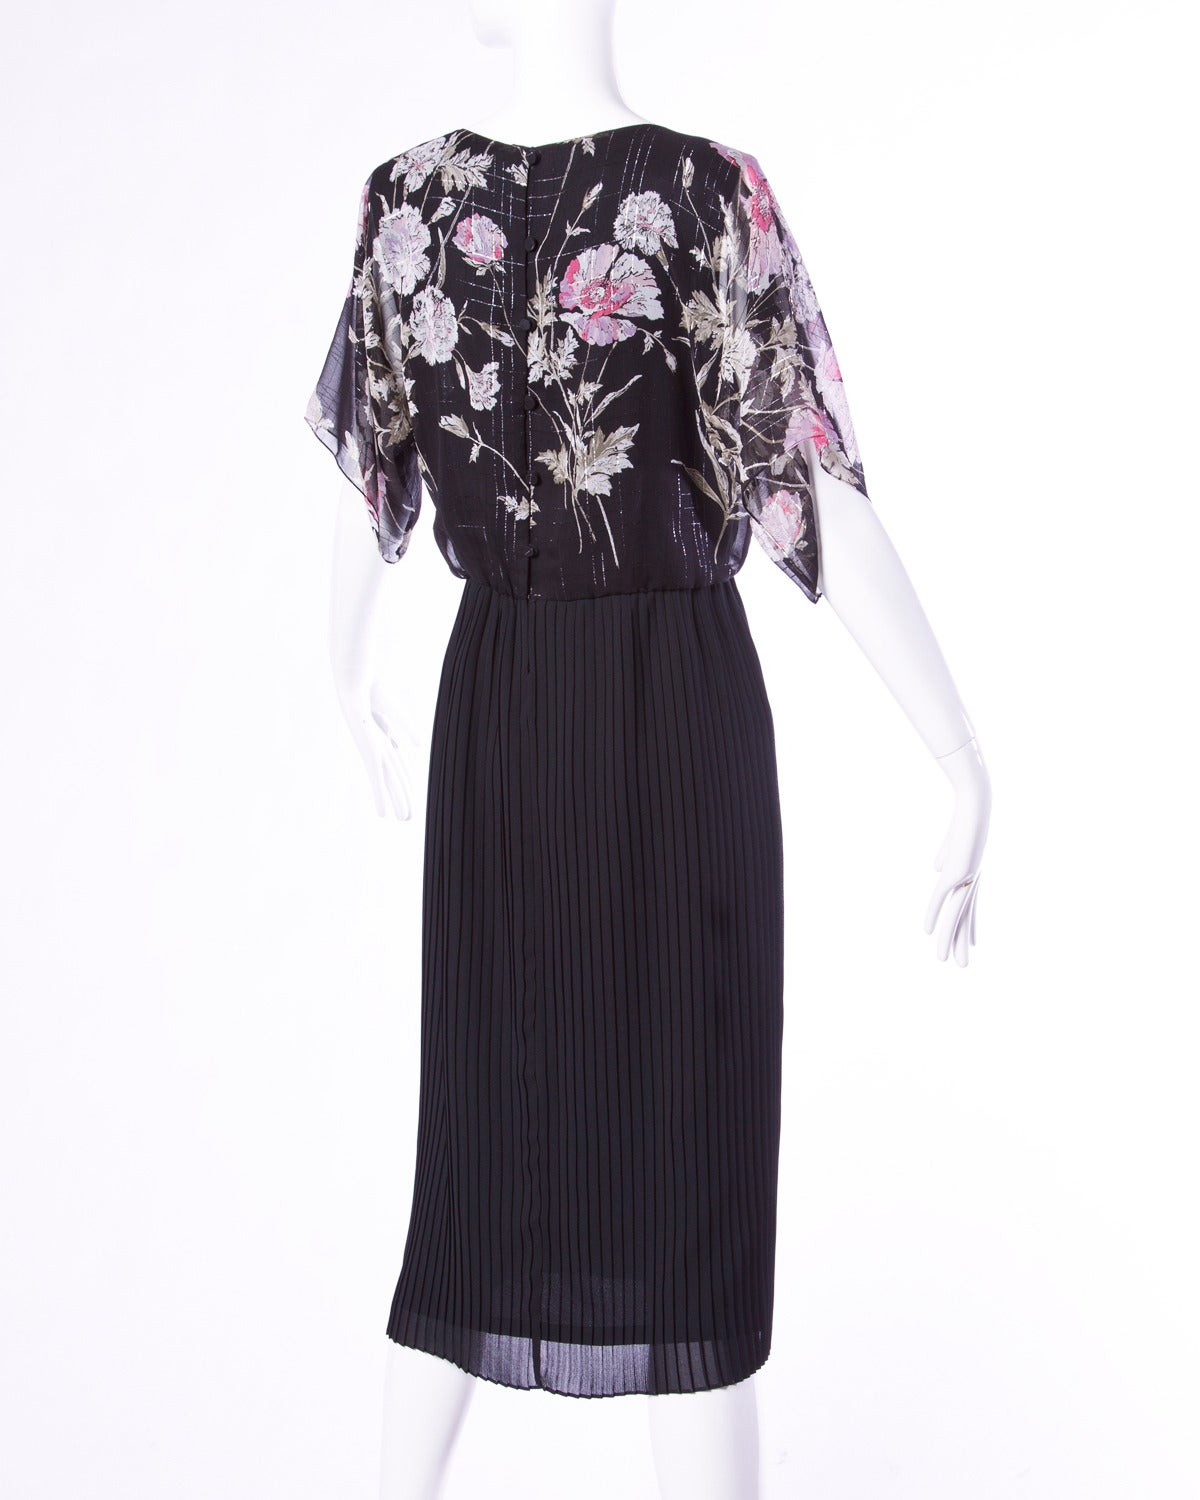 Hanae Mori Vintage 1970s 70s Sheer Floral Print Metallic Dress In Excellent Condition For Sale In Sparks, NV